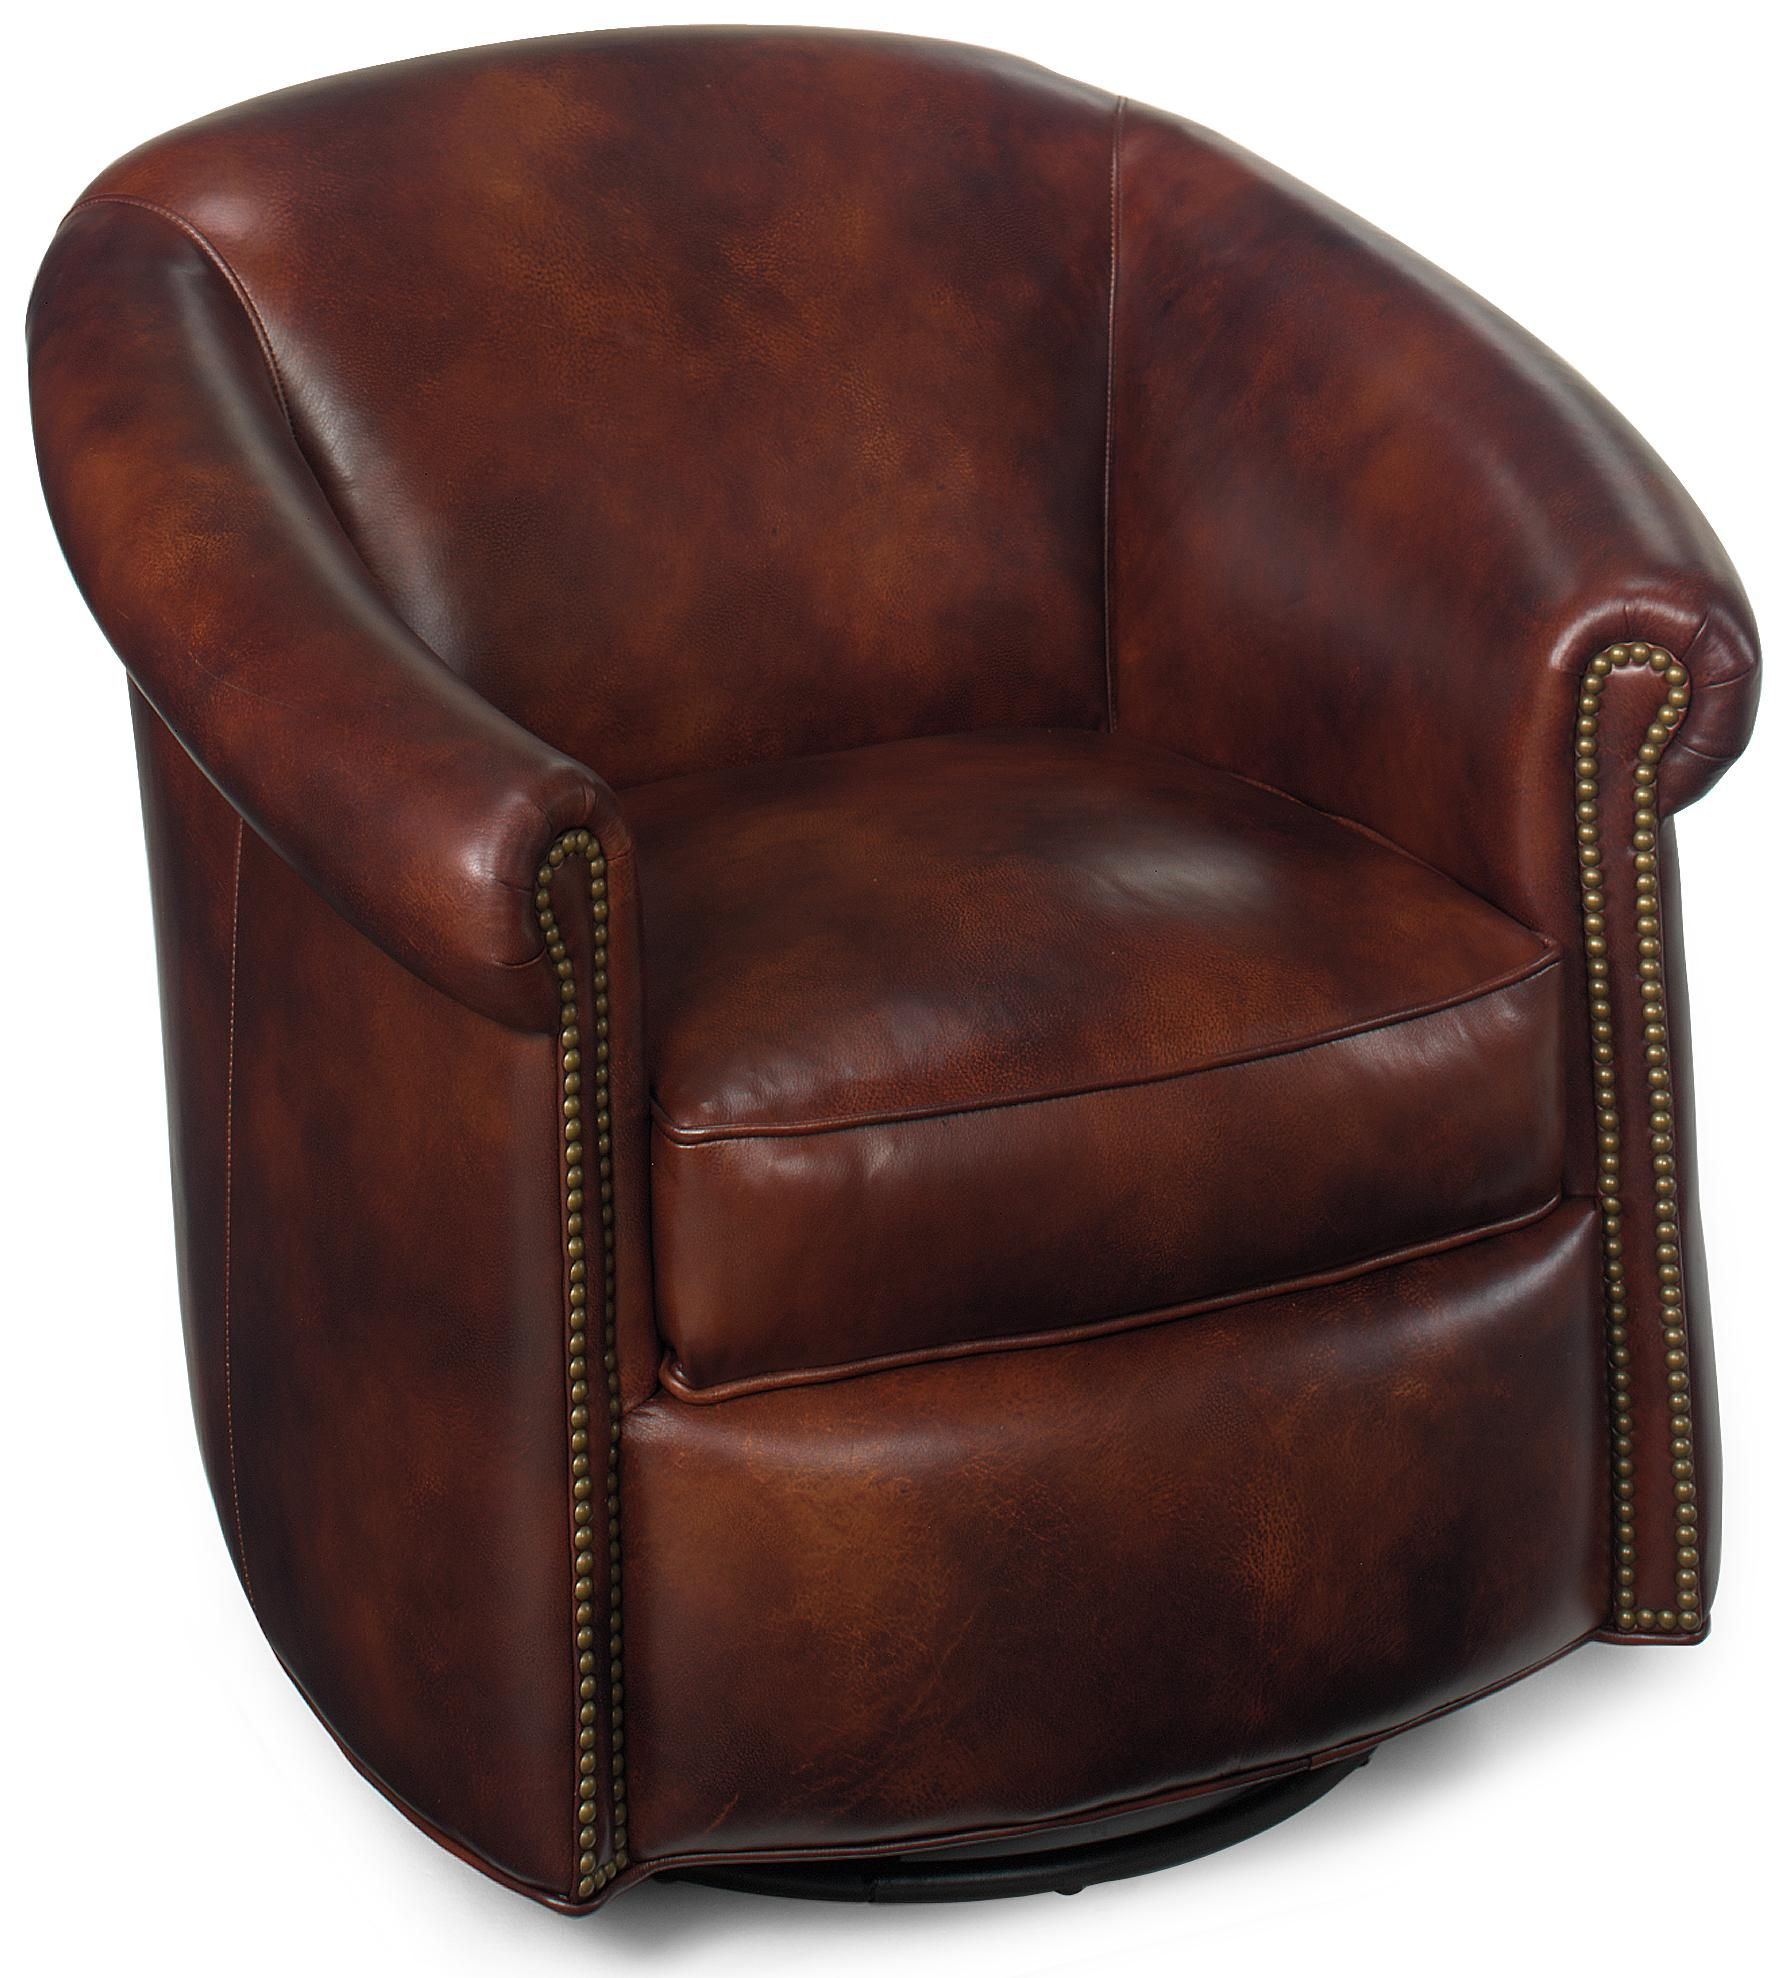 Attractive Swivel Tub Chairs Marietta Swivel Glider Tub Chair By Bradington Young